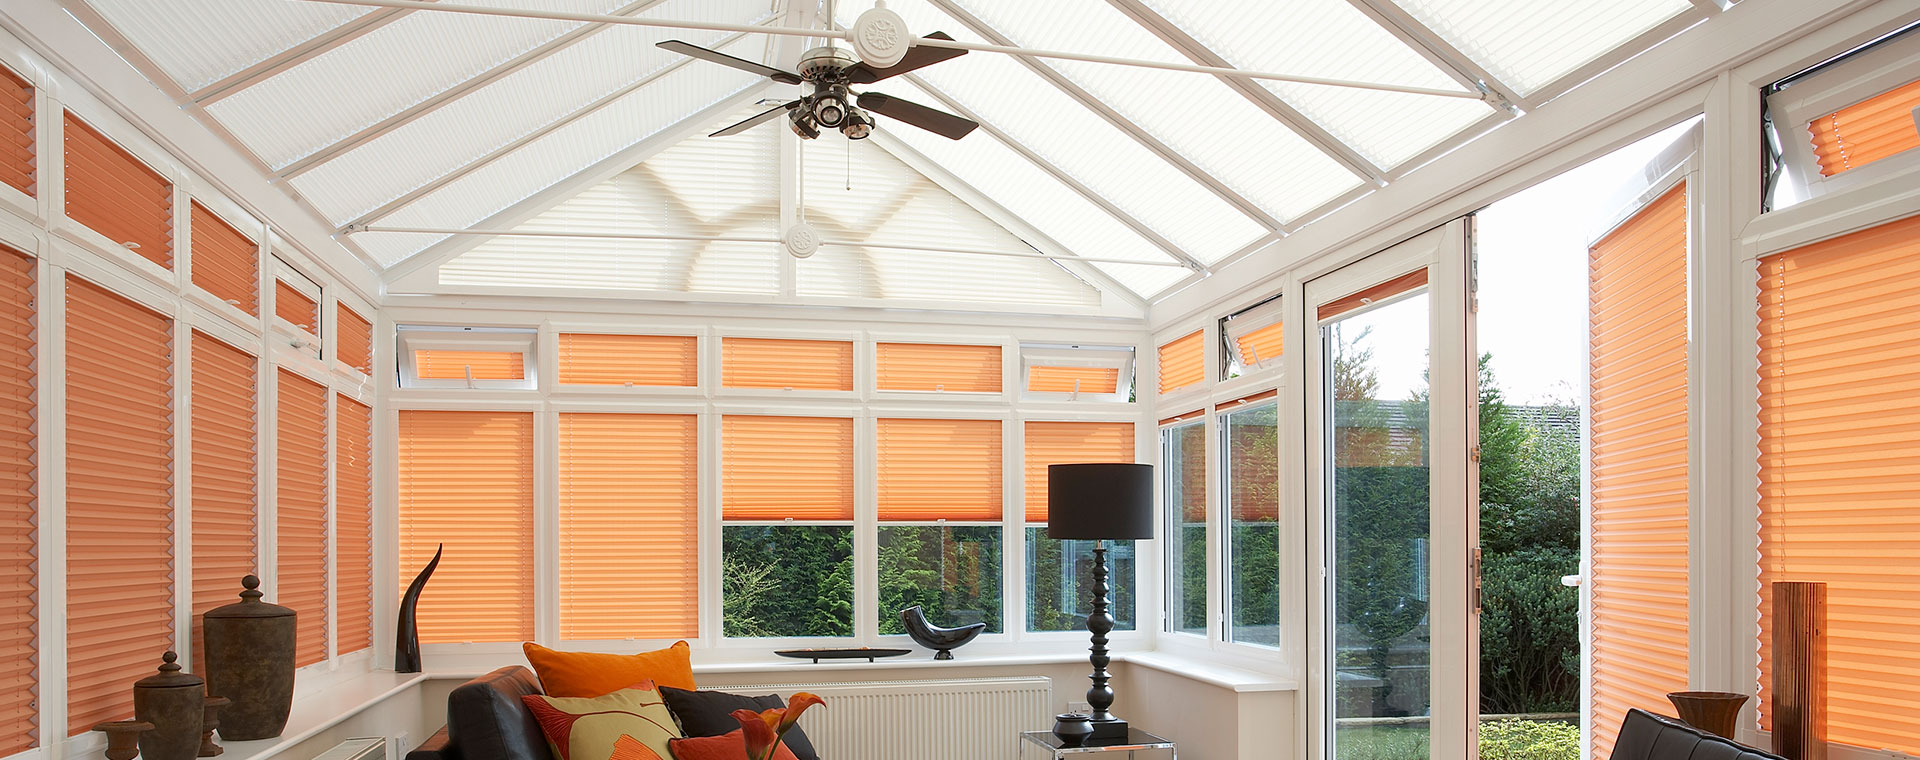 Conservatory Blinds Slide 4